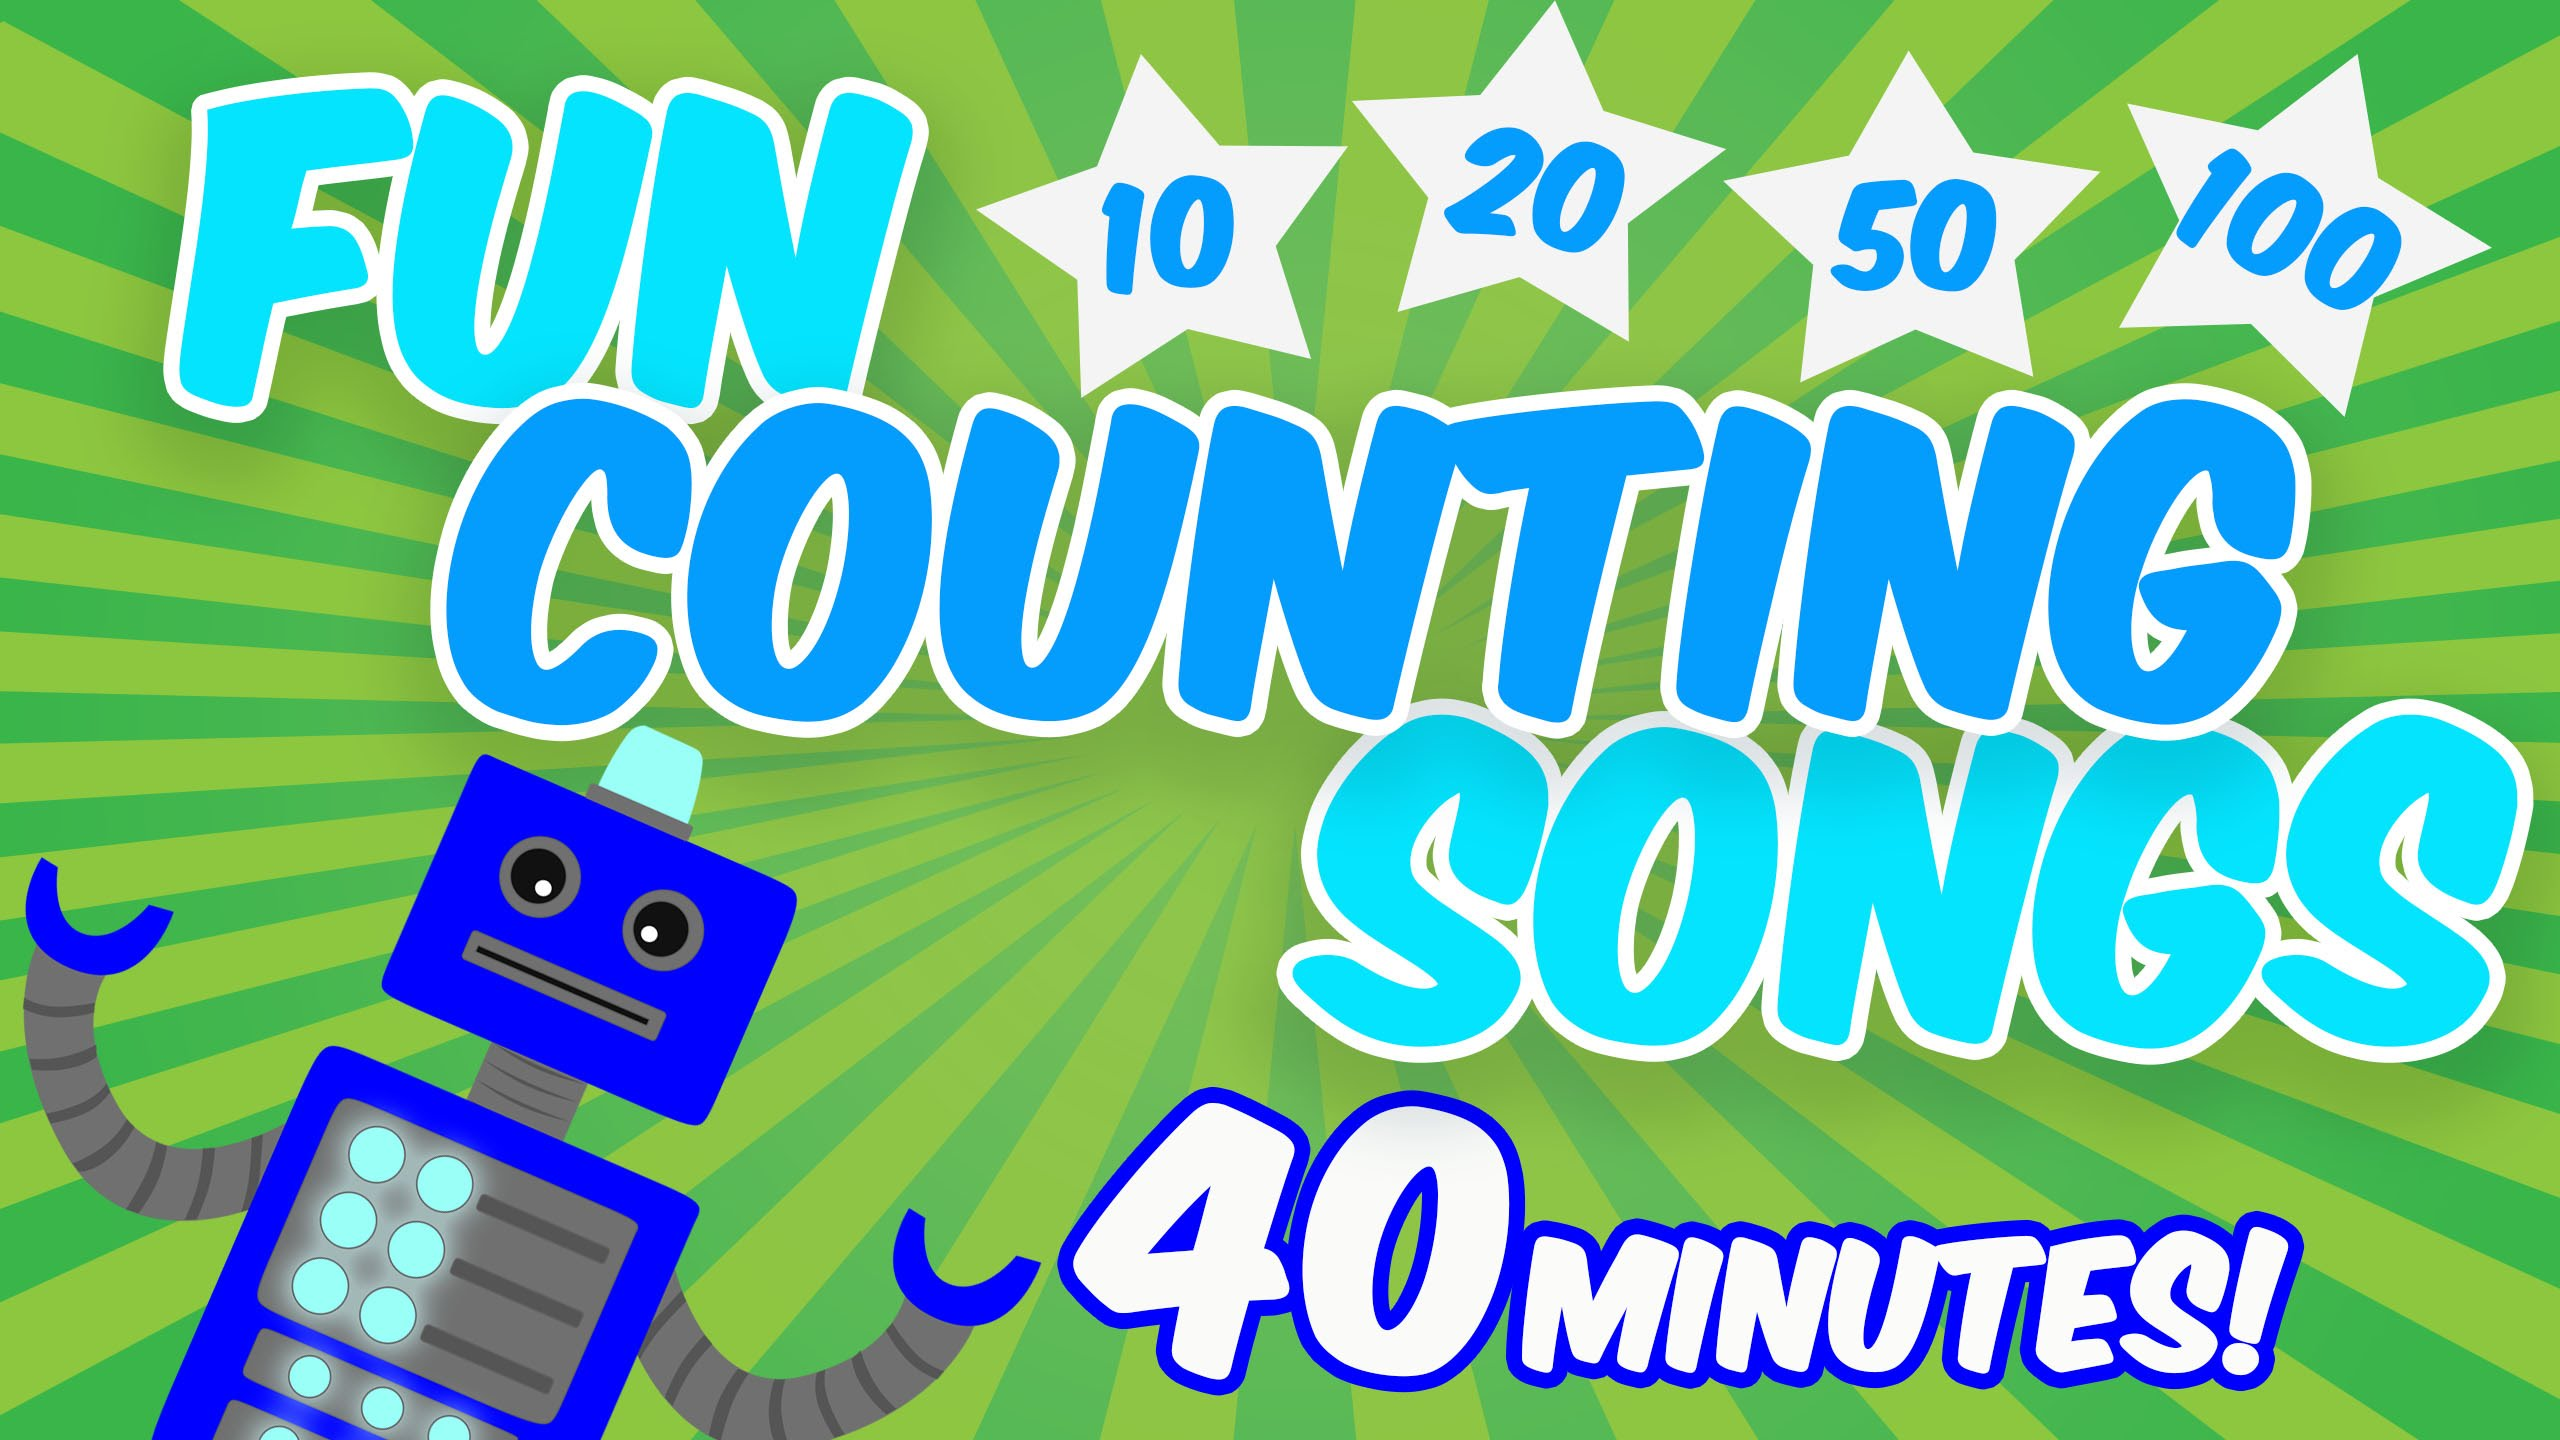 Fun Counting Songs for Kids – Counting Videos for Preschool and ...